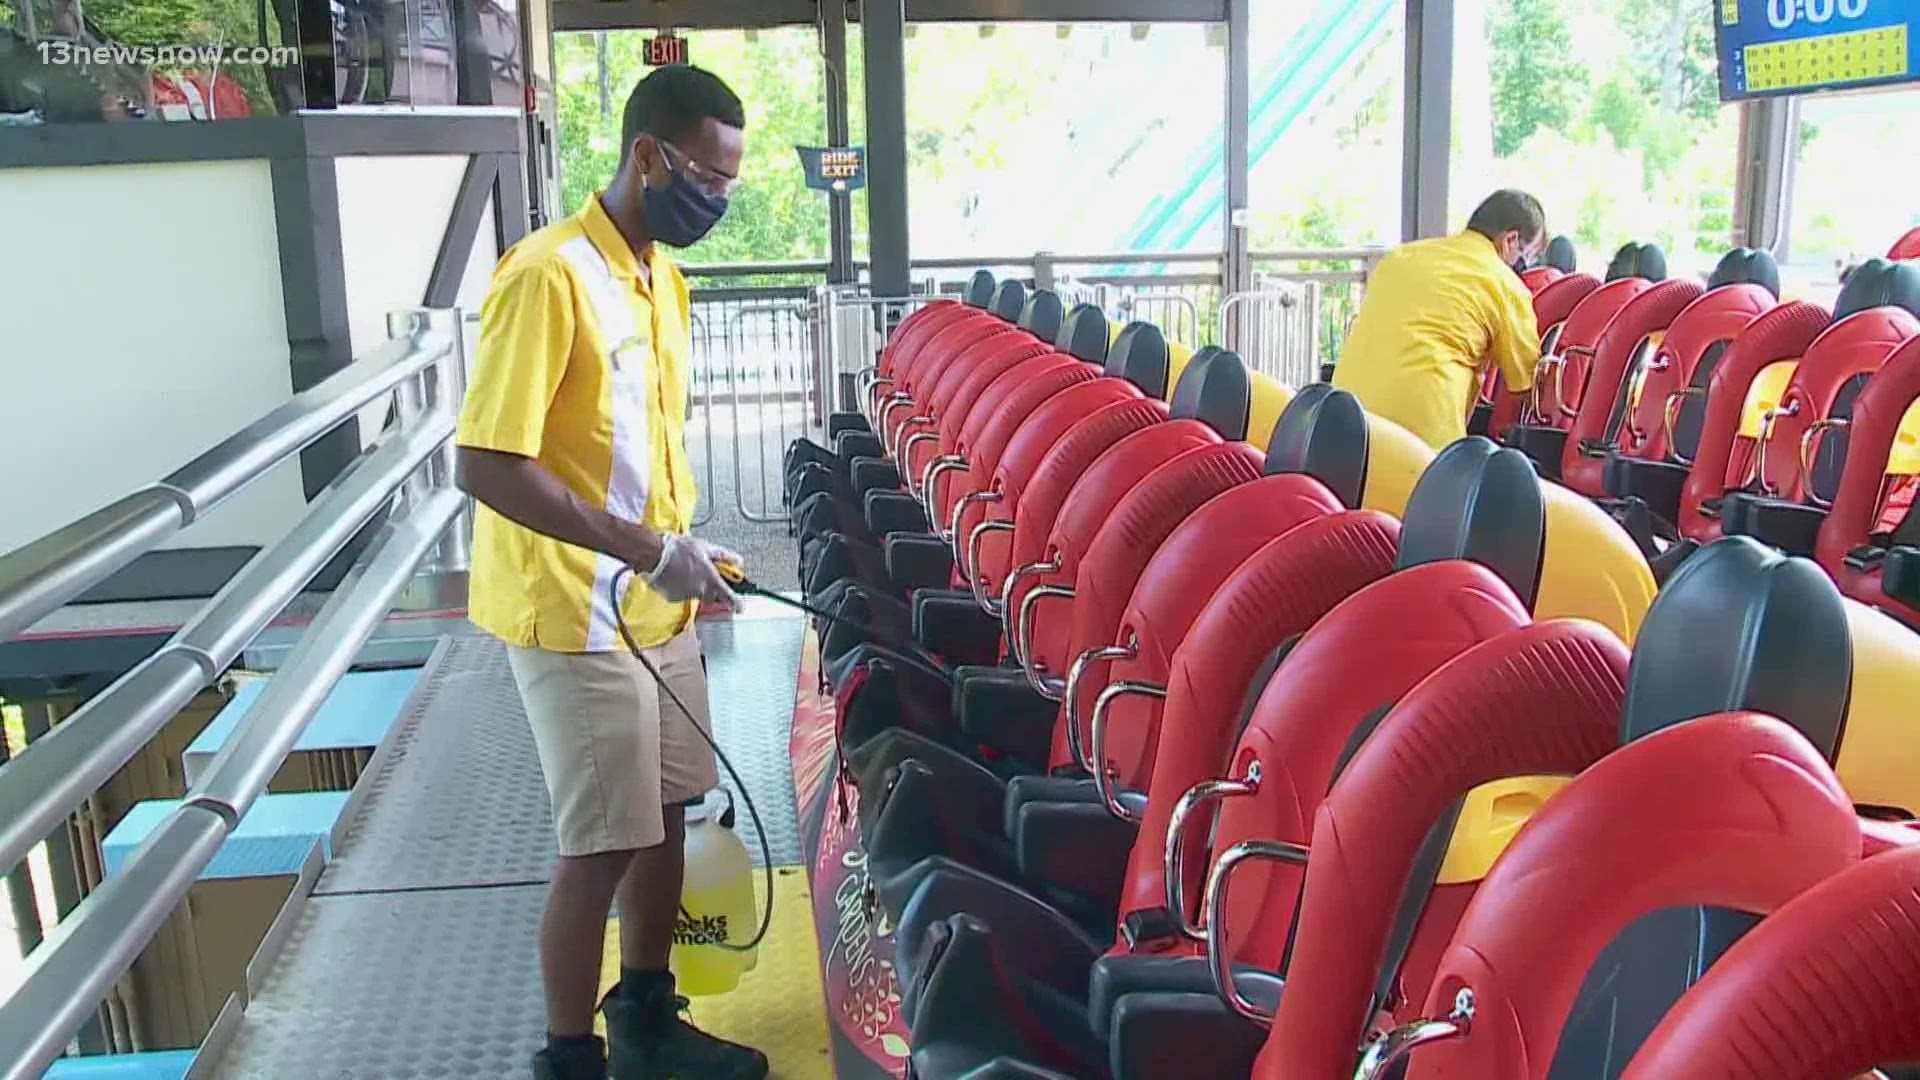 Busch Gardens Williamsburg to reopen for special 11 day event